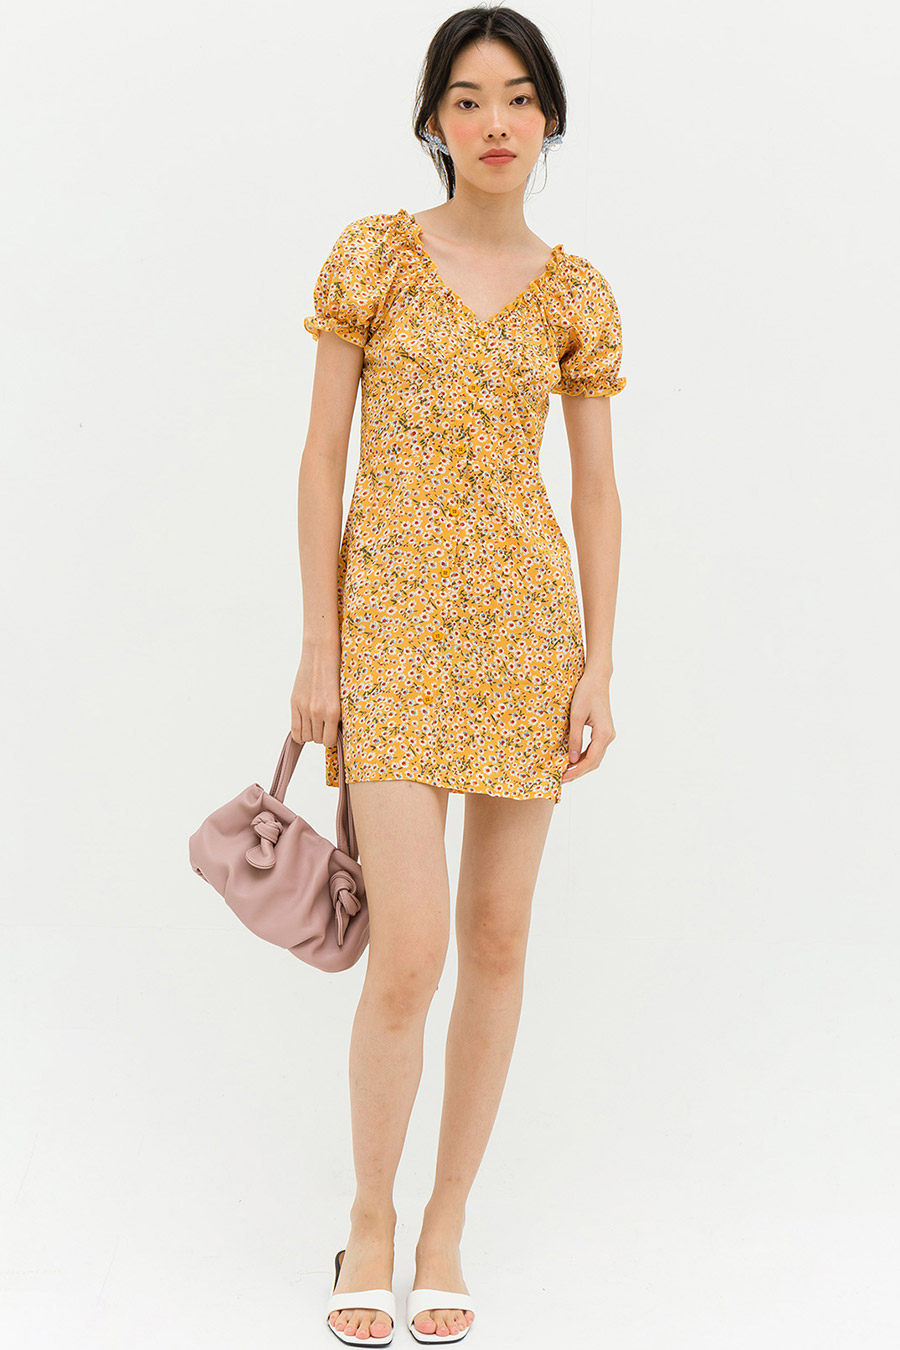 MANOLO DRESS - HARVEST